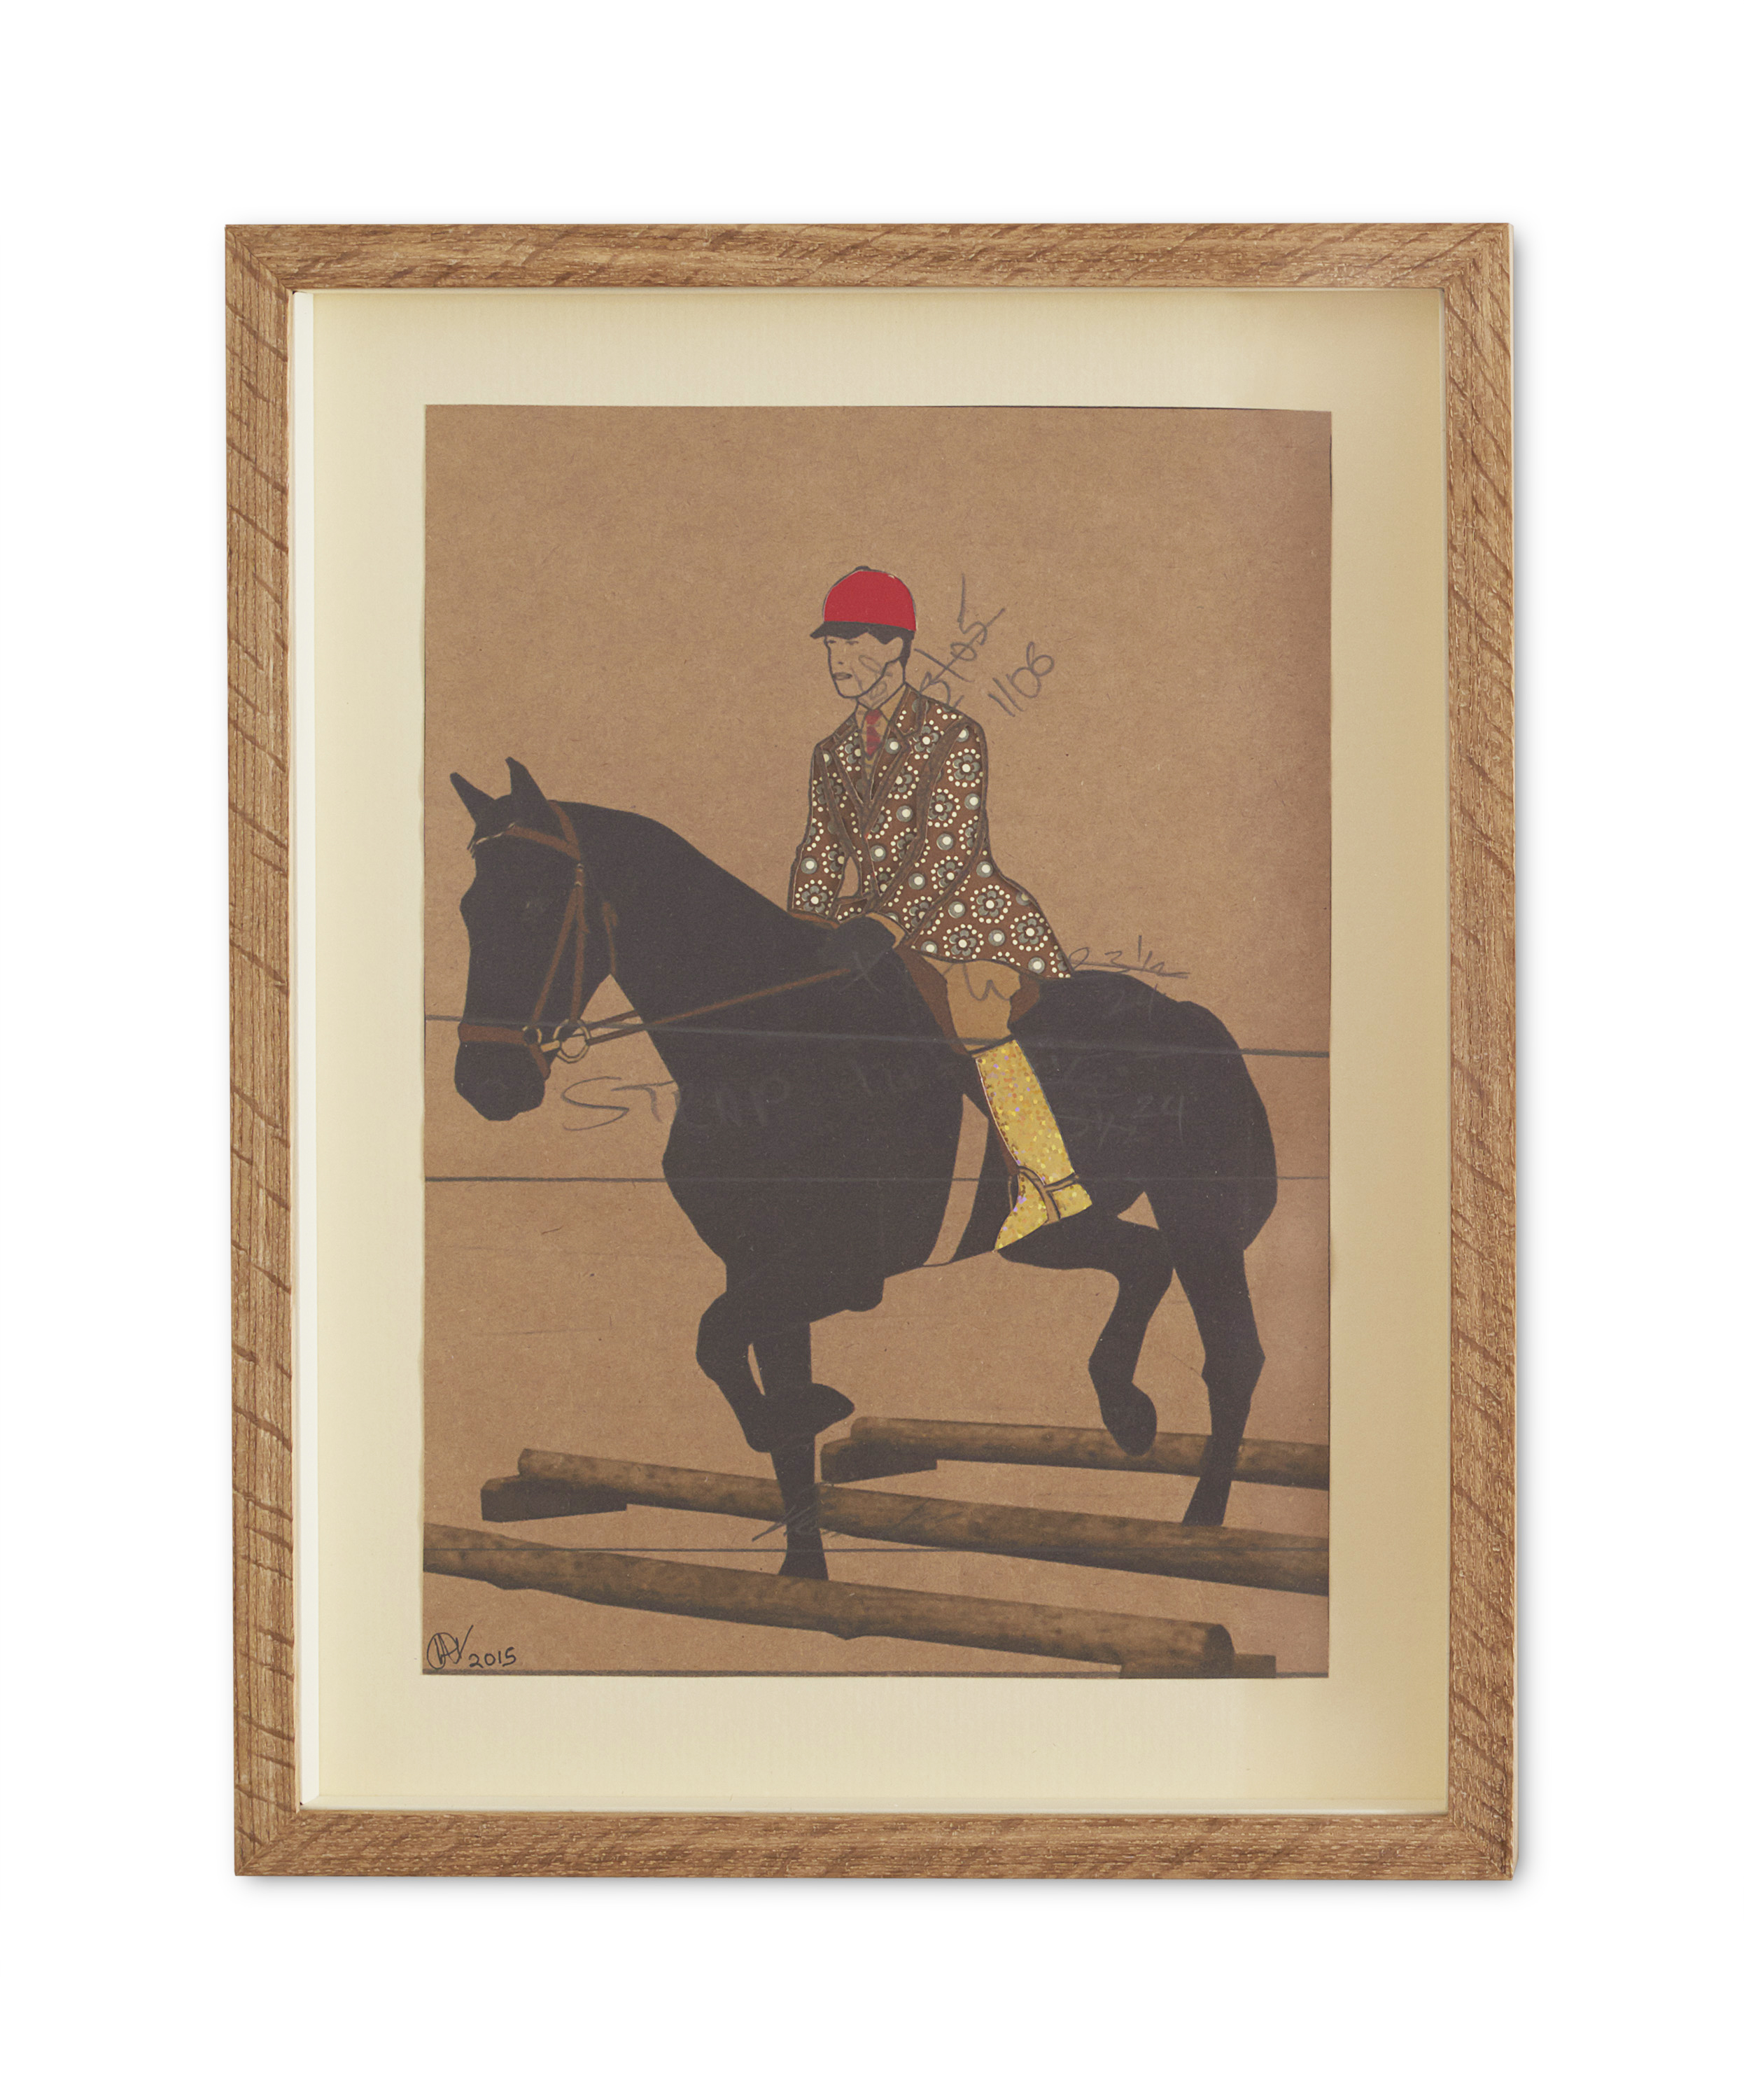 Golden Booted Equestrian ,  2015  38.2 x 29.6 cm (framed) £440